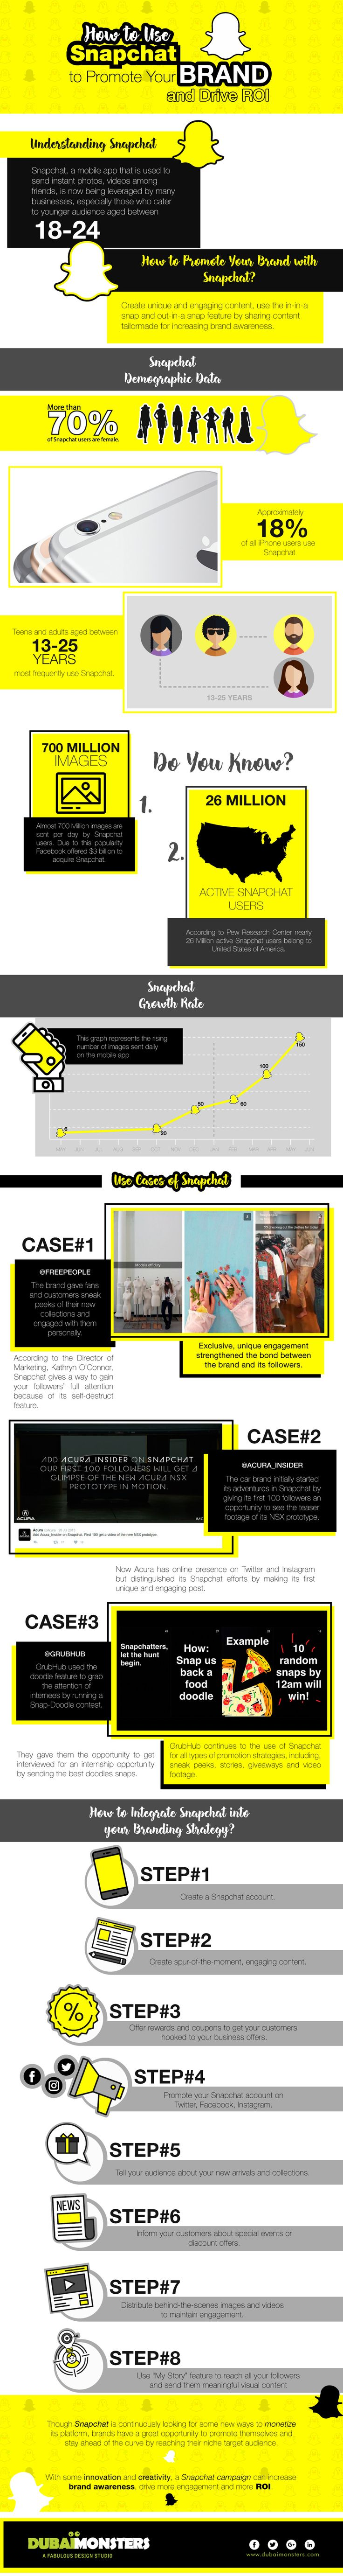 How to Use Snapchat to Promote Your Brand and Generate Revenue [Infographic]